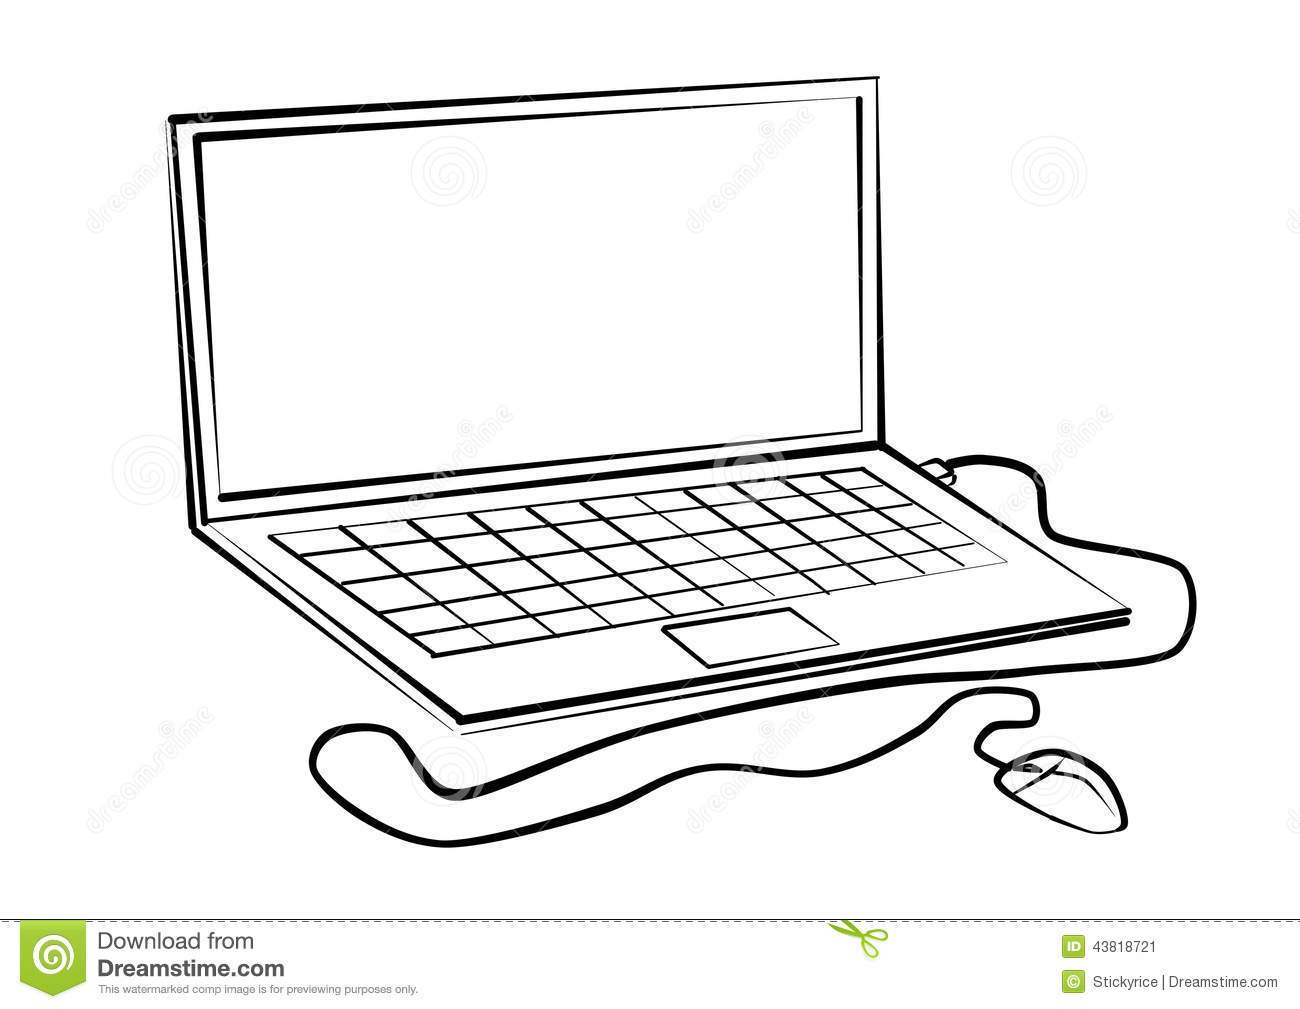 Drawing Lines With Mouse C : Labtop line drawings stock image of notebook